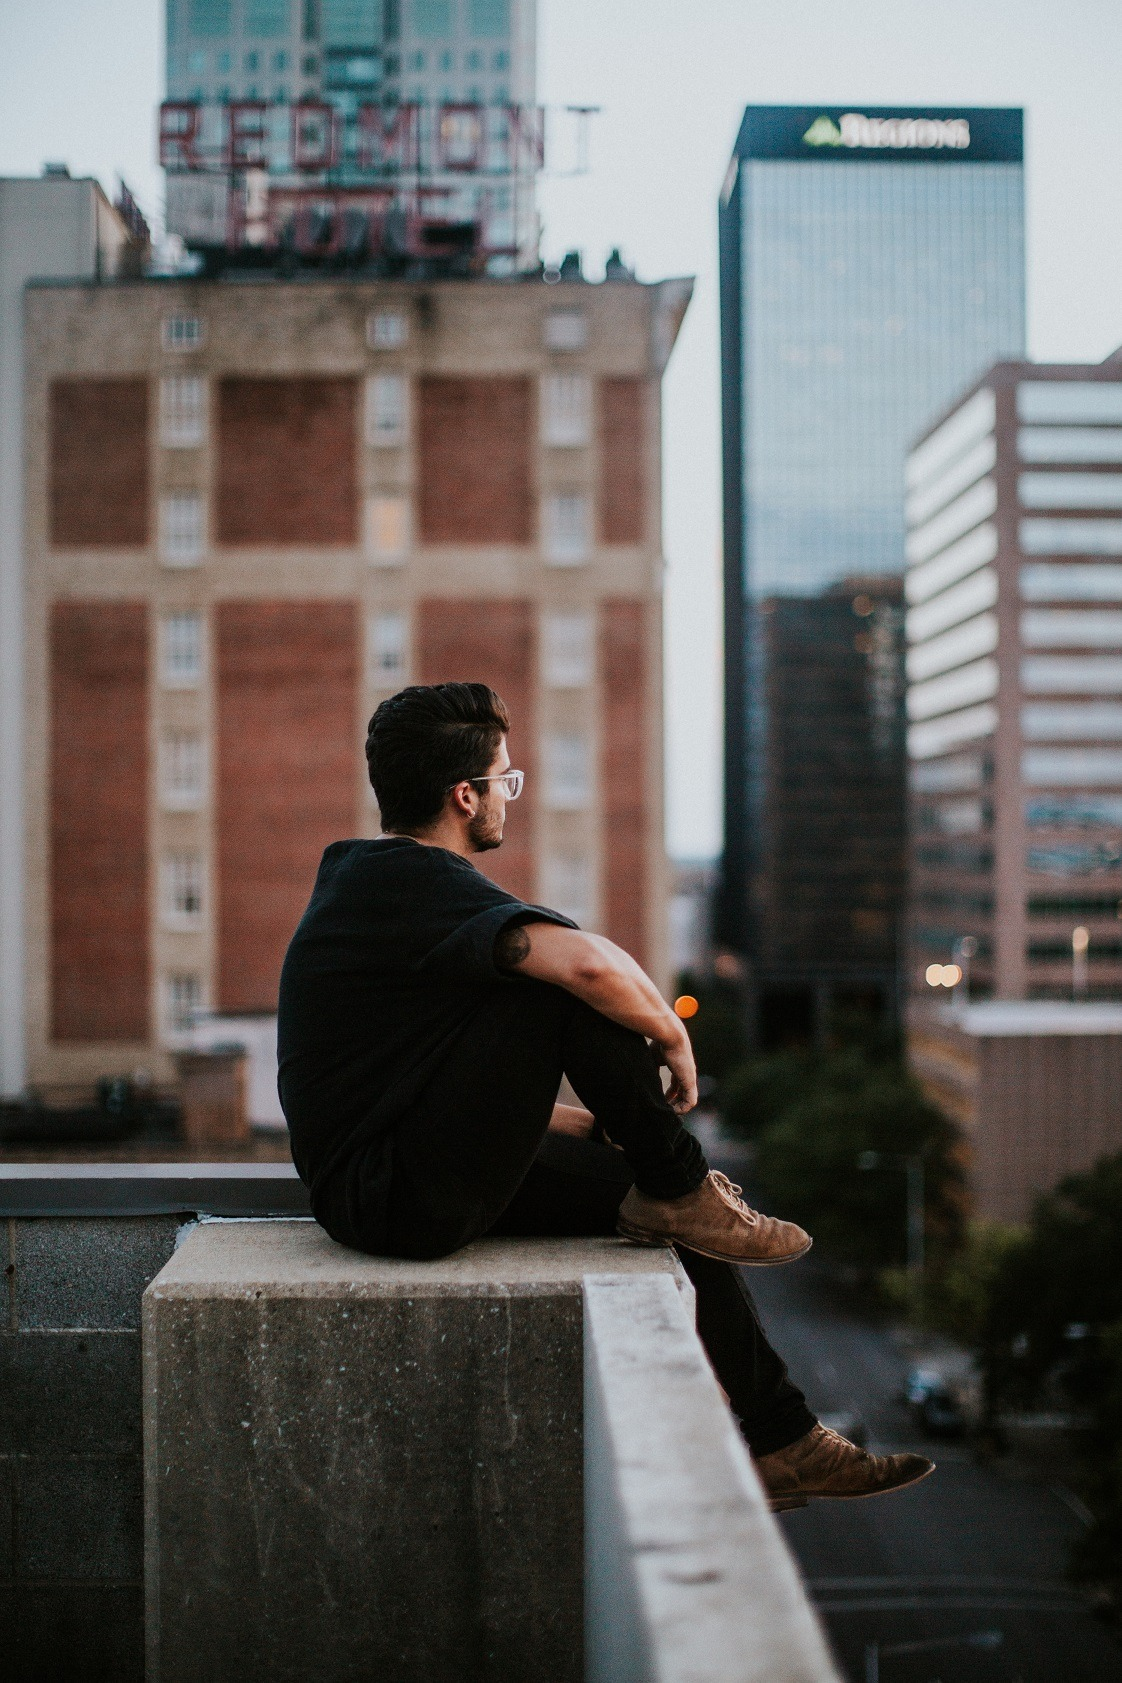 Man thinking on ledge in city.